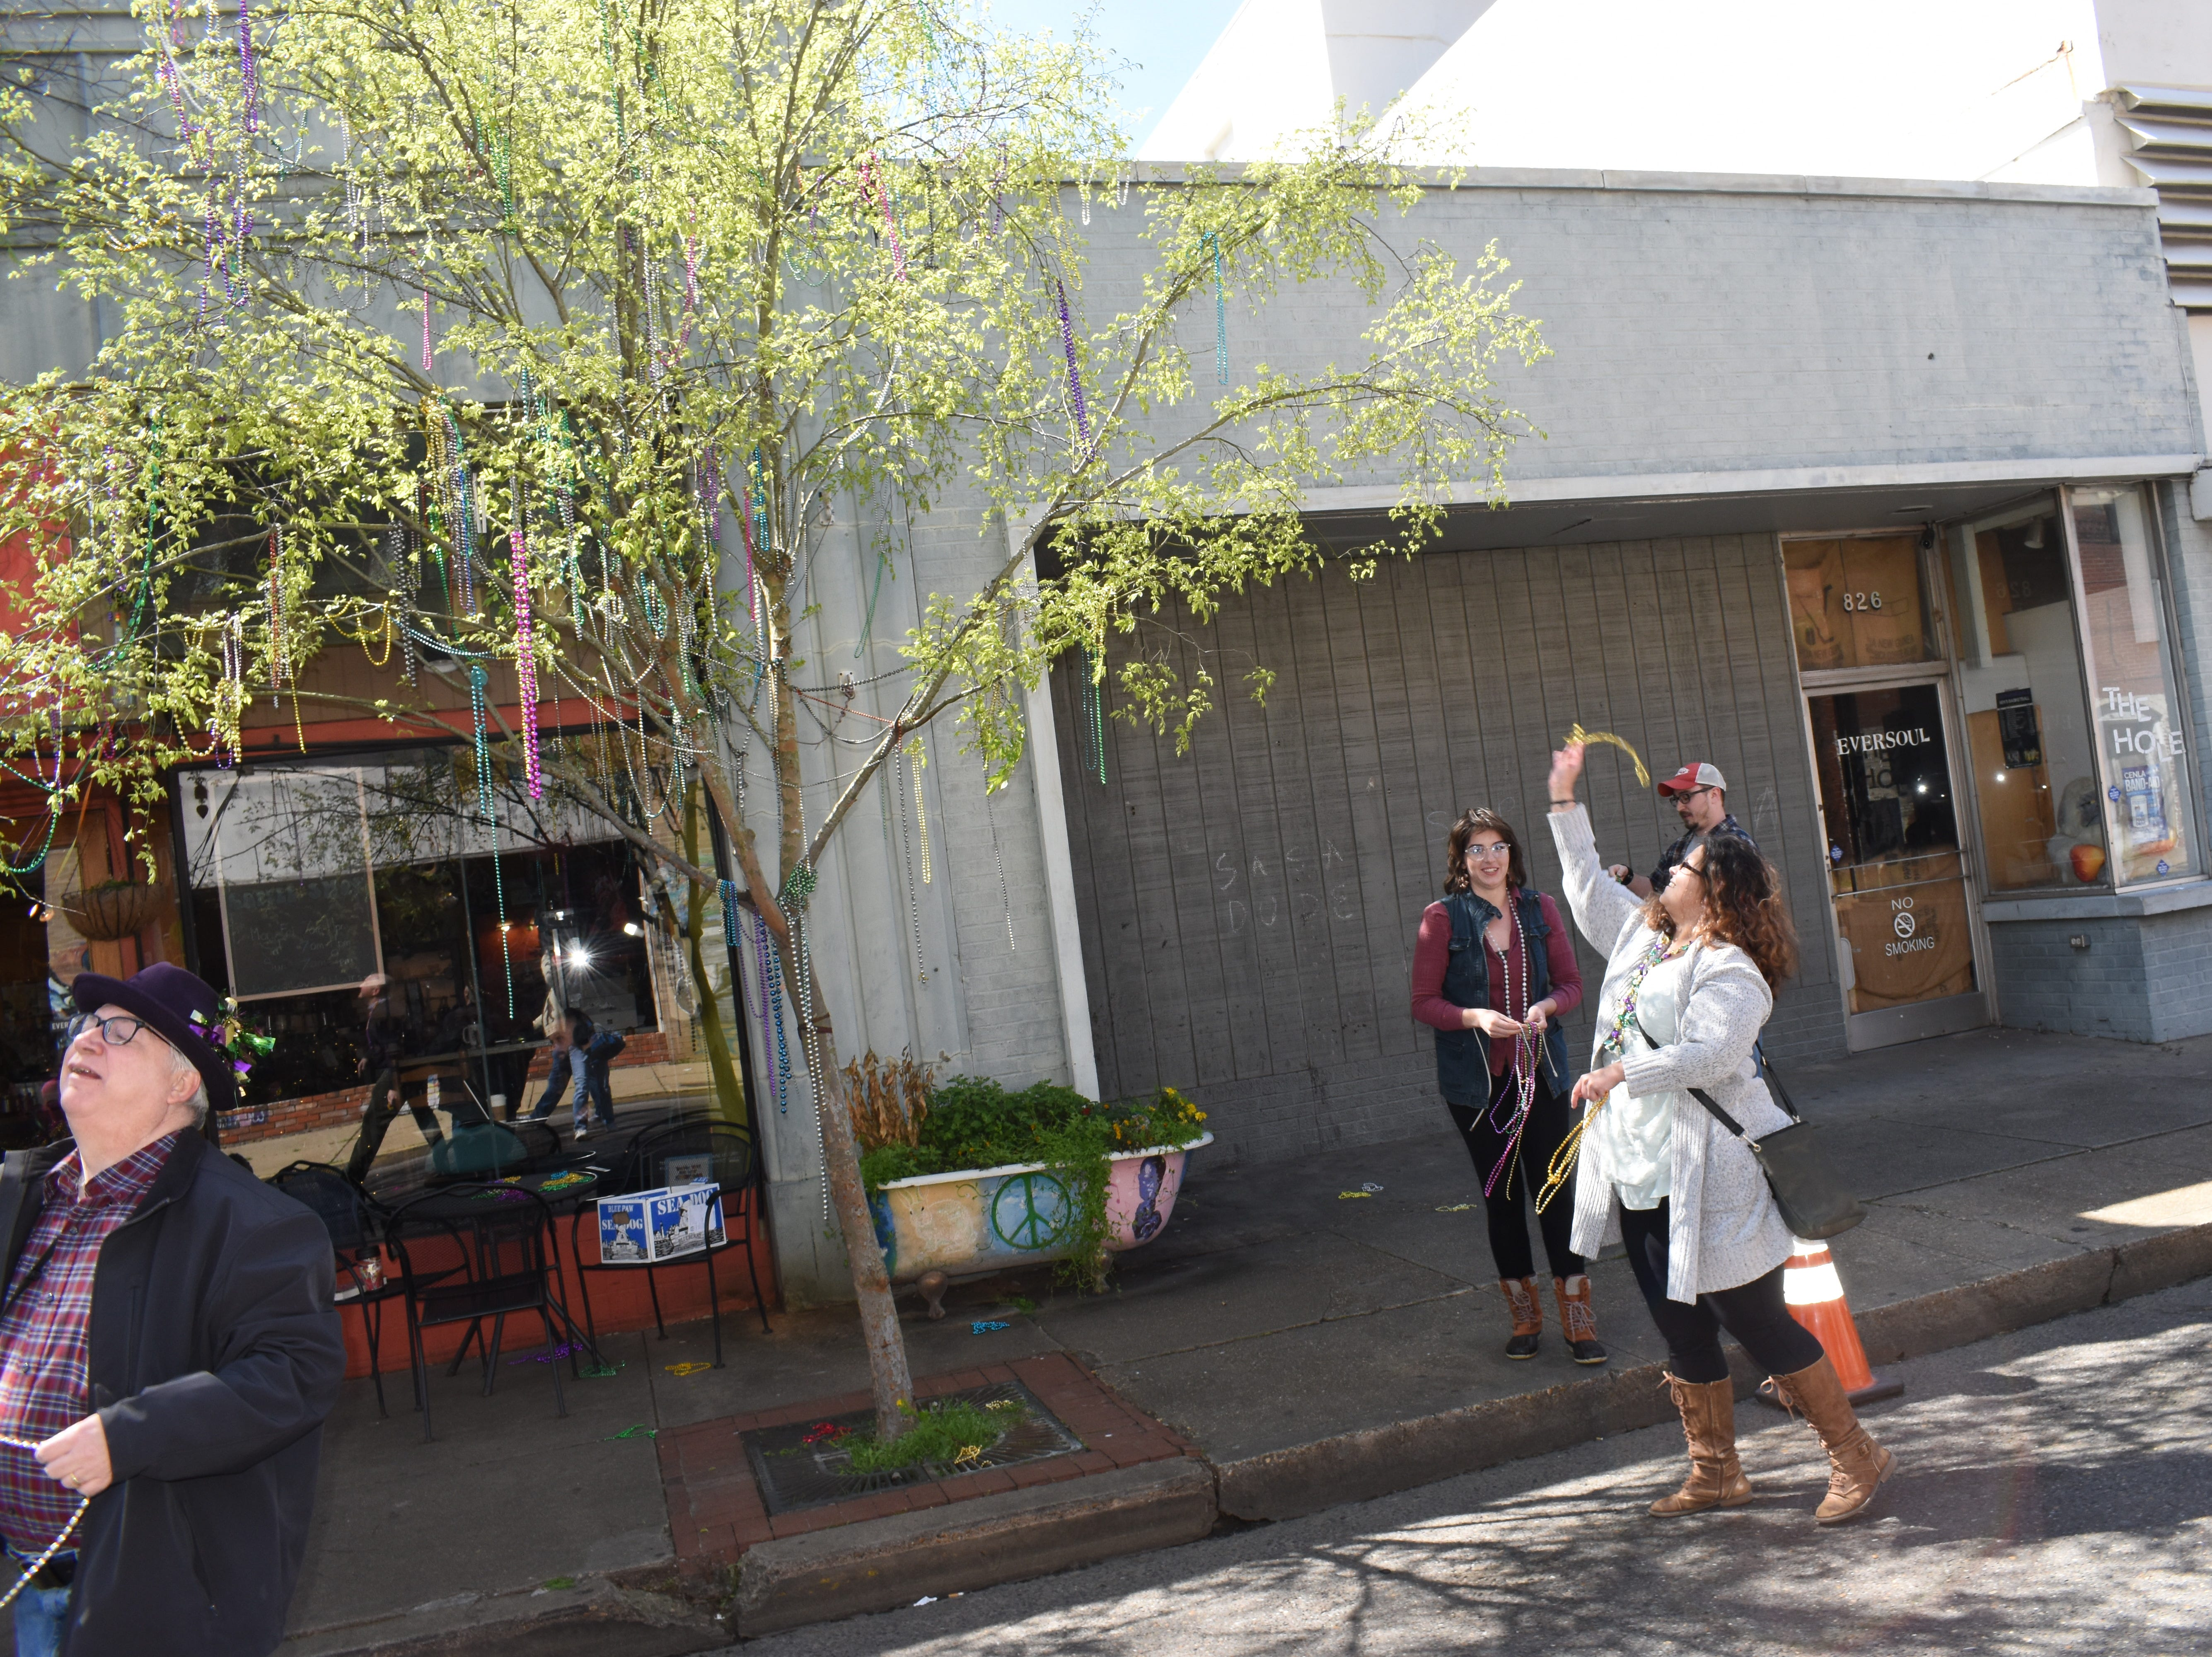 Tamp & Grind Coffee Shop in downtown Alexandria held their annual Beading of the Trees for Mardi Gras on Tuesday, March 5, 2019. Members of the public were invited to the free even to toss plastic beads in the trees in front of the coffee shop. The event has been a tradition for years at the coffee shop.